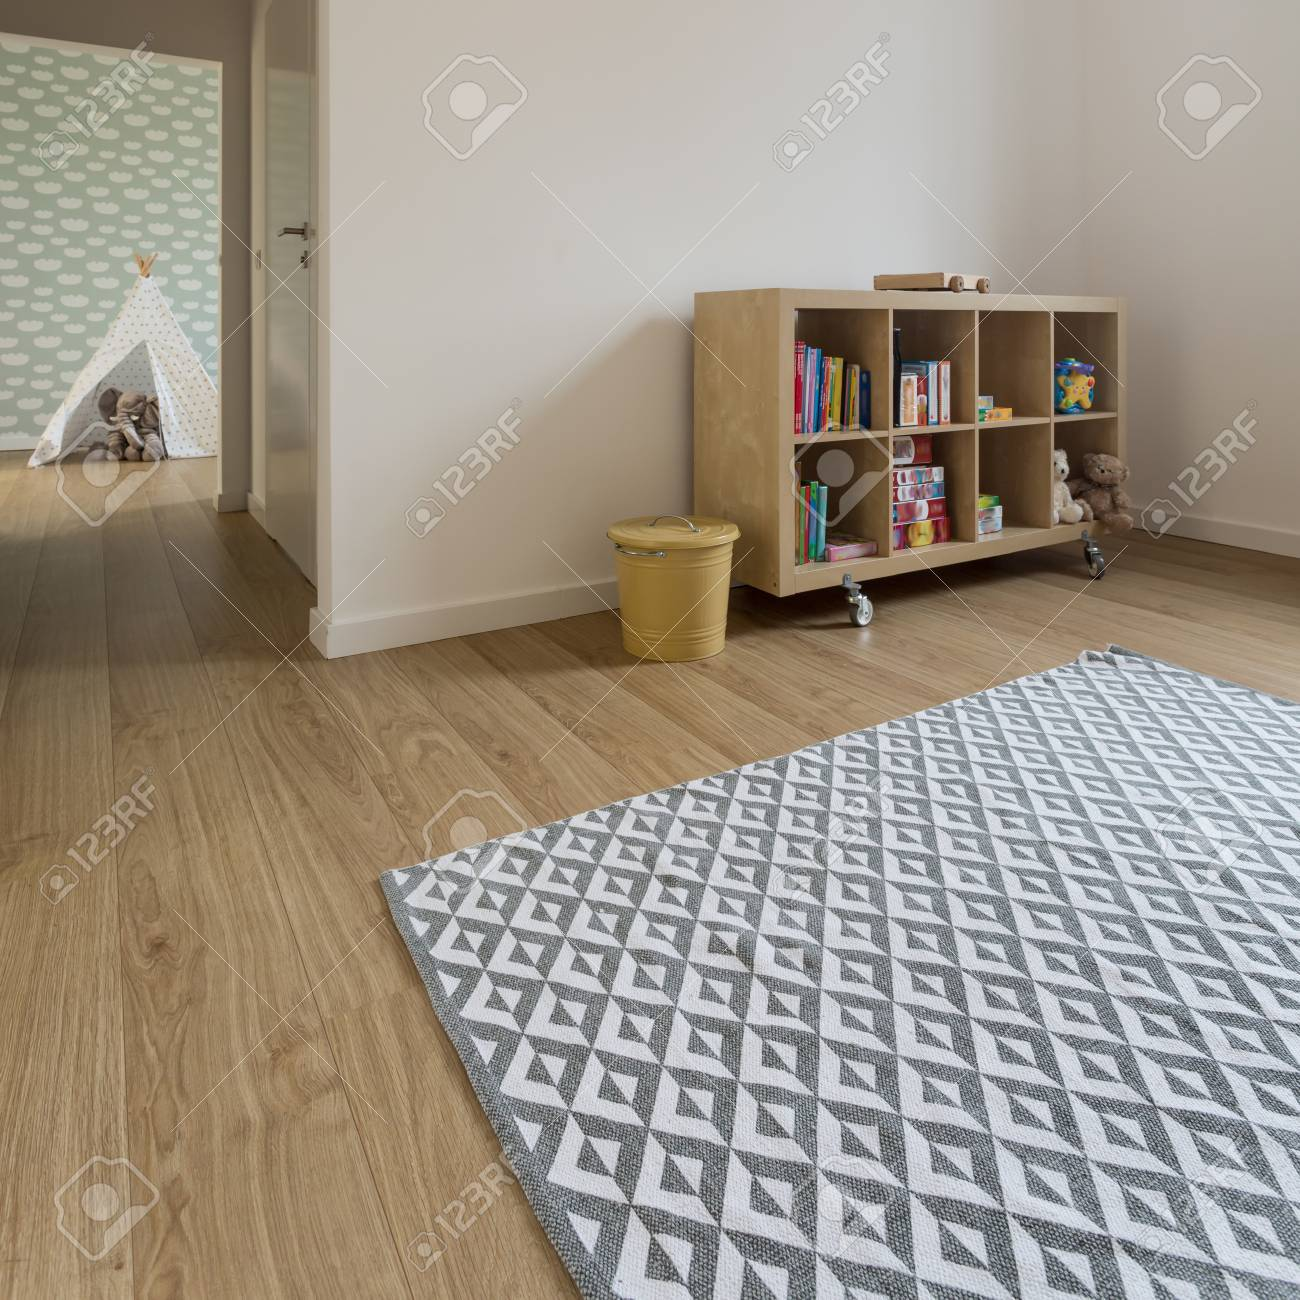 Patterned Carpet Spacious Play Room For Kids With Patterned Carpet Wooden Furnitures